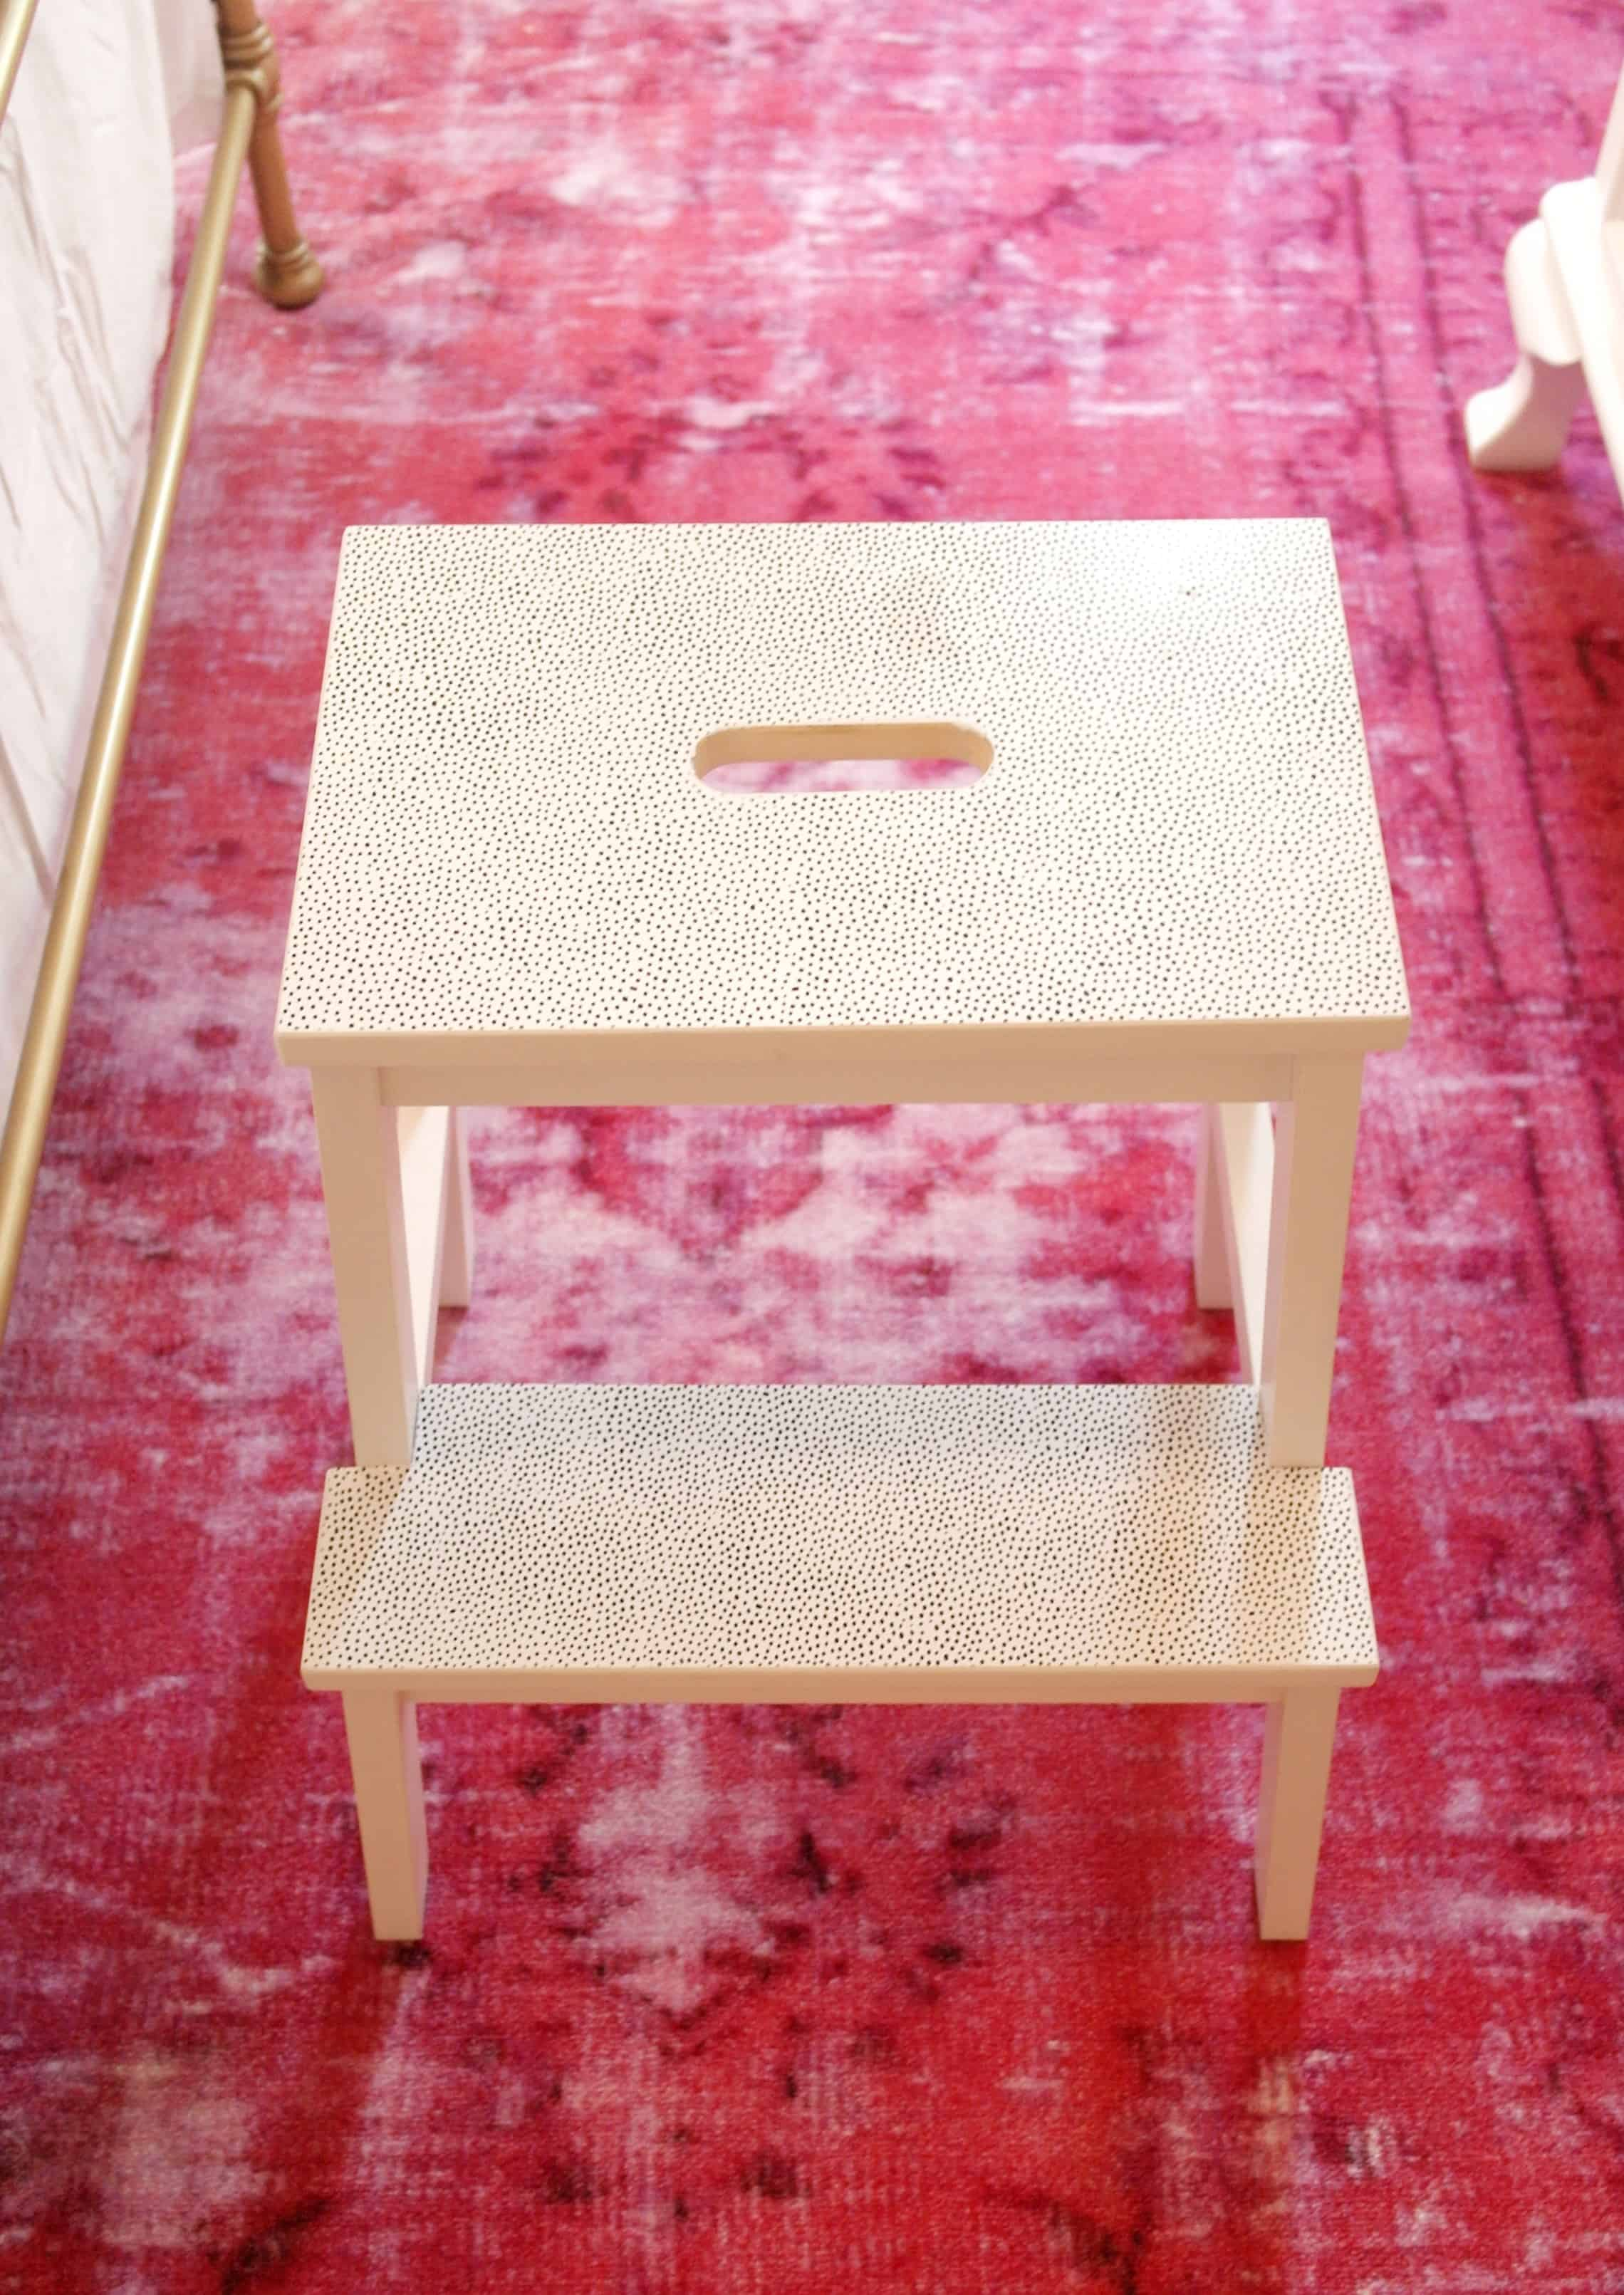 black and white Ikea step stool on pink rug